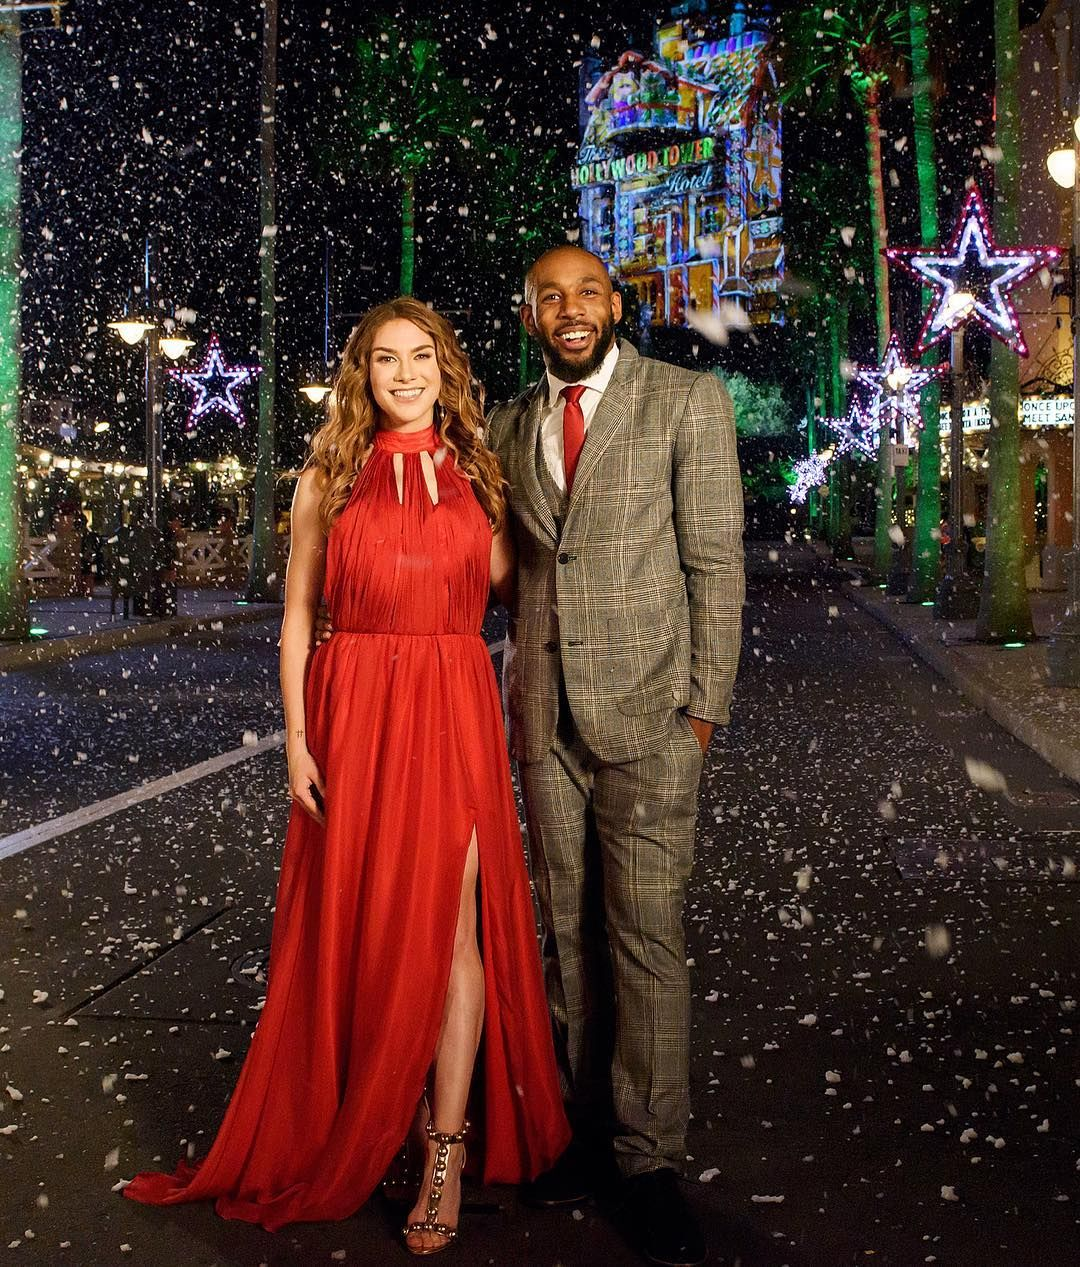 Allison Holker And Husband Stephen Twitch Boss To Host Disney S Fairy Tale Weddings Series And Holiday Magic Special Disney Fairy Tale Weddings Wedding Tv Shows Celebrity Couples